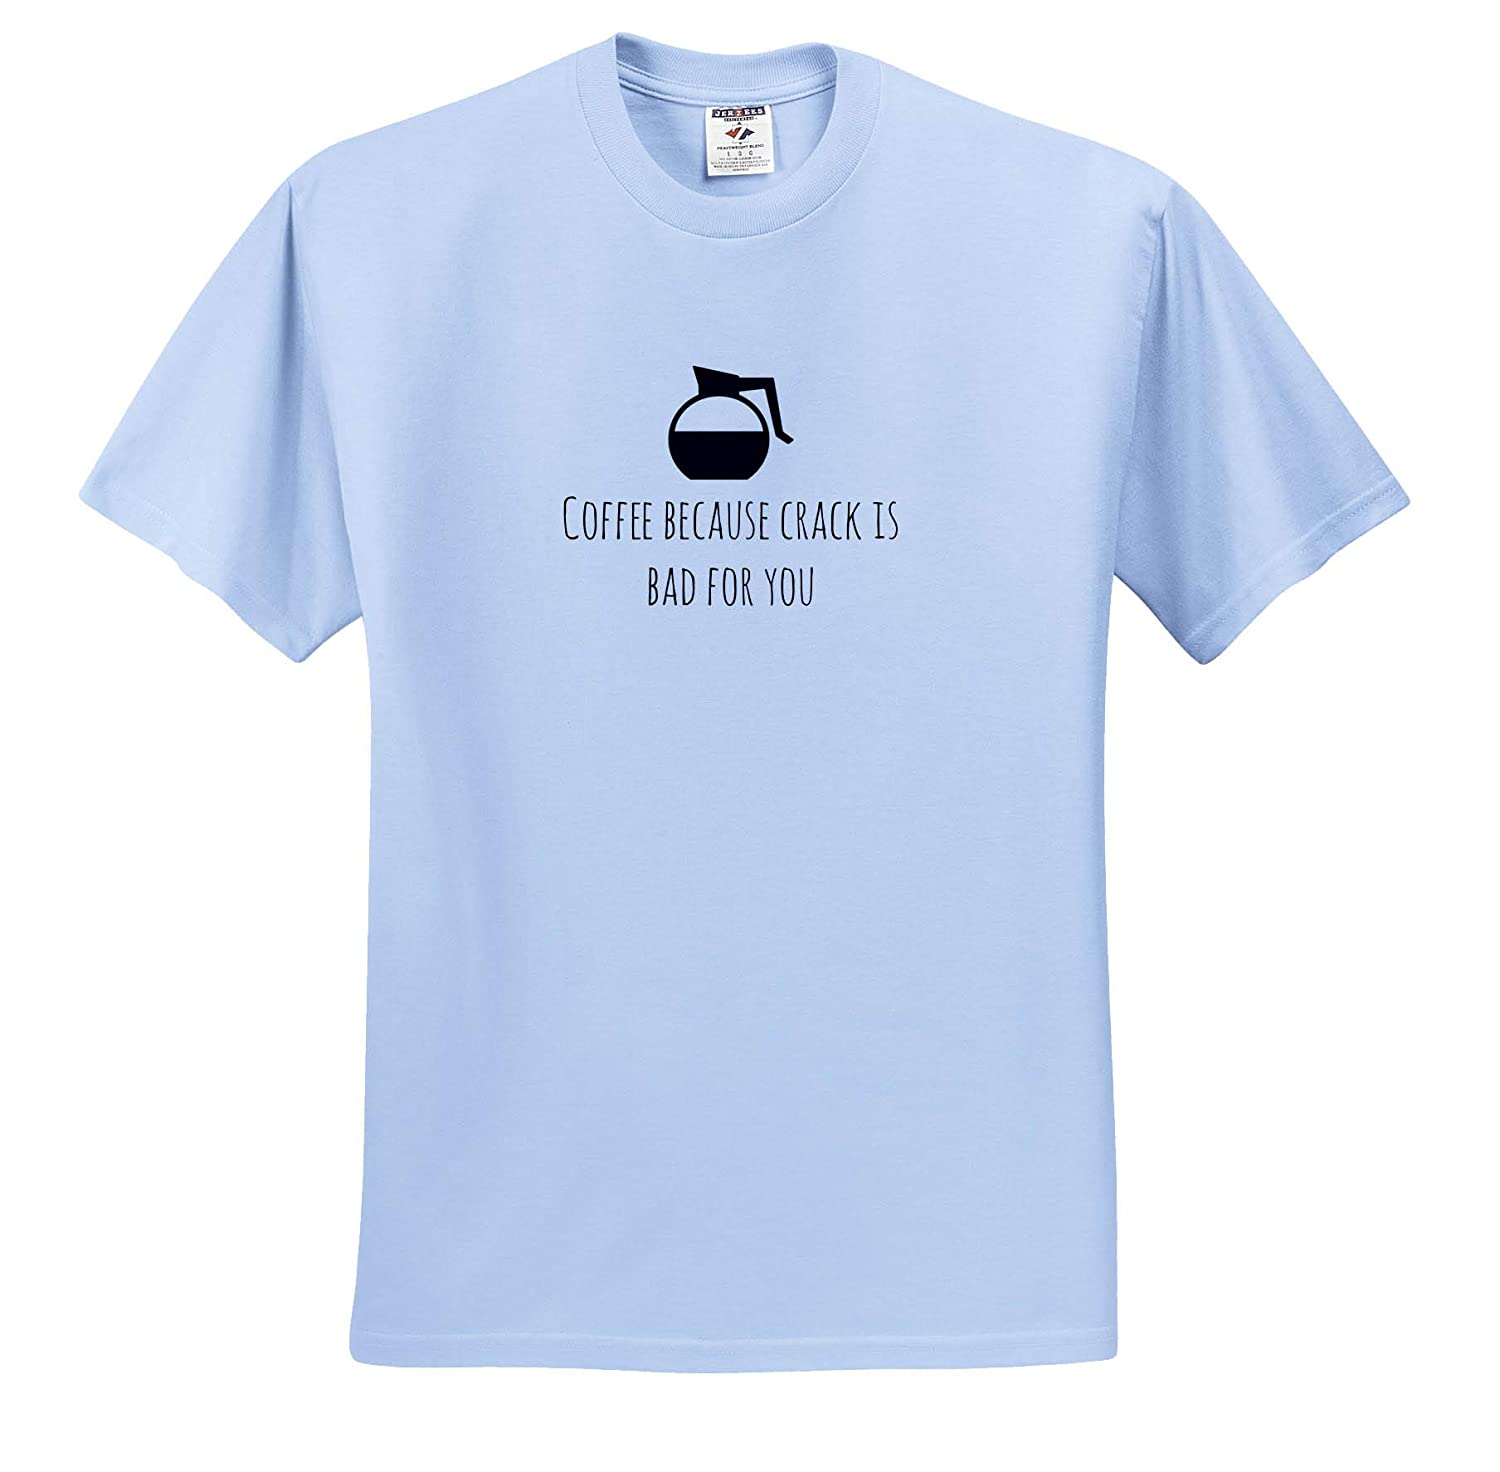 Adult T-Shirt XL ts/_317789 3dRose Gabriella-Quote Image of Coffee Because Crack is Bad for You Quote